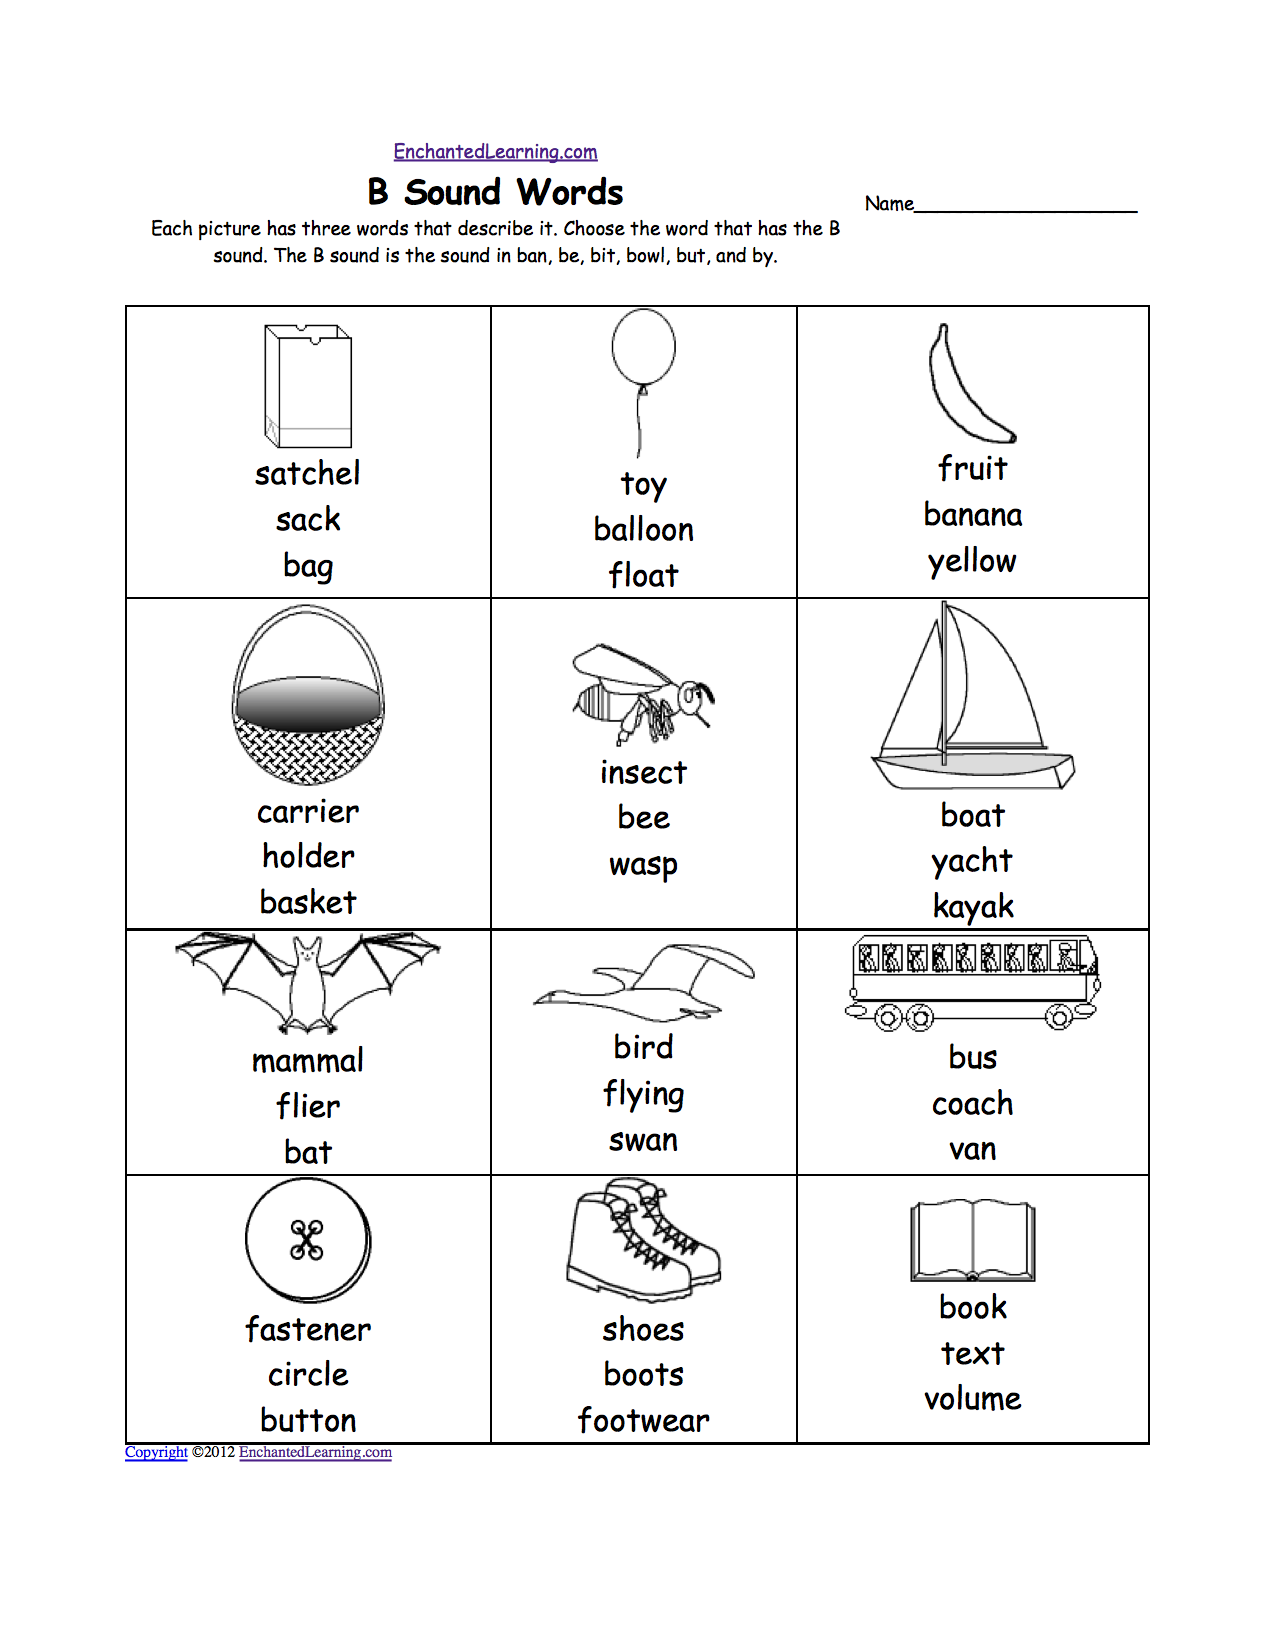 Aldiablosus  Unusual Phonics Worksheets Multiple Choice Worksheets To Print  With Interesting Quotbquot Sound Phonics Worksheet Multiple Choice Each Picture Has Three Words That Describe It Choose The Word That Has A Quotbquot Sound The Quotbquot Sound Is The Sound  With Cute Balancing Chemical Equations Chapter  Worksheet  Also Clauses Worksheet In Addition Chemistry Unit  Worksheet  And Act Math Worksheets As Well As Singular Possessive Nouns Worksheets Additionally Worksheet Works Answer Key From Enchantedlearningcom With Aldiablosus  Interesting Phonics Worksheets Multiple Choice Worksheets To Print  With Cute Quotbquot Sound Phonics Worksheet Multiple Choice Each Picture Has Three Words That Describe It Choose The Word That Has A Quotbquot Sound The Quotbquot Sound Is The Sound  And Unusual Balancing Chemical Equations Chapter  Worksheet  Also Clauses Worksheet In Addition Chemistry Unit  Worksheet  From Enchantedlearningcom